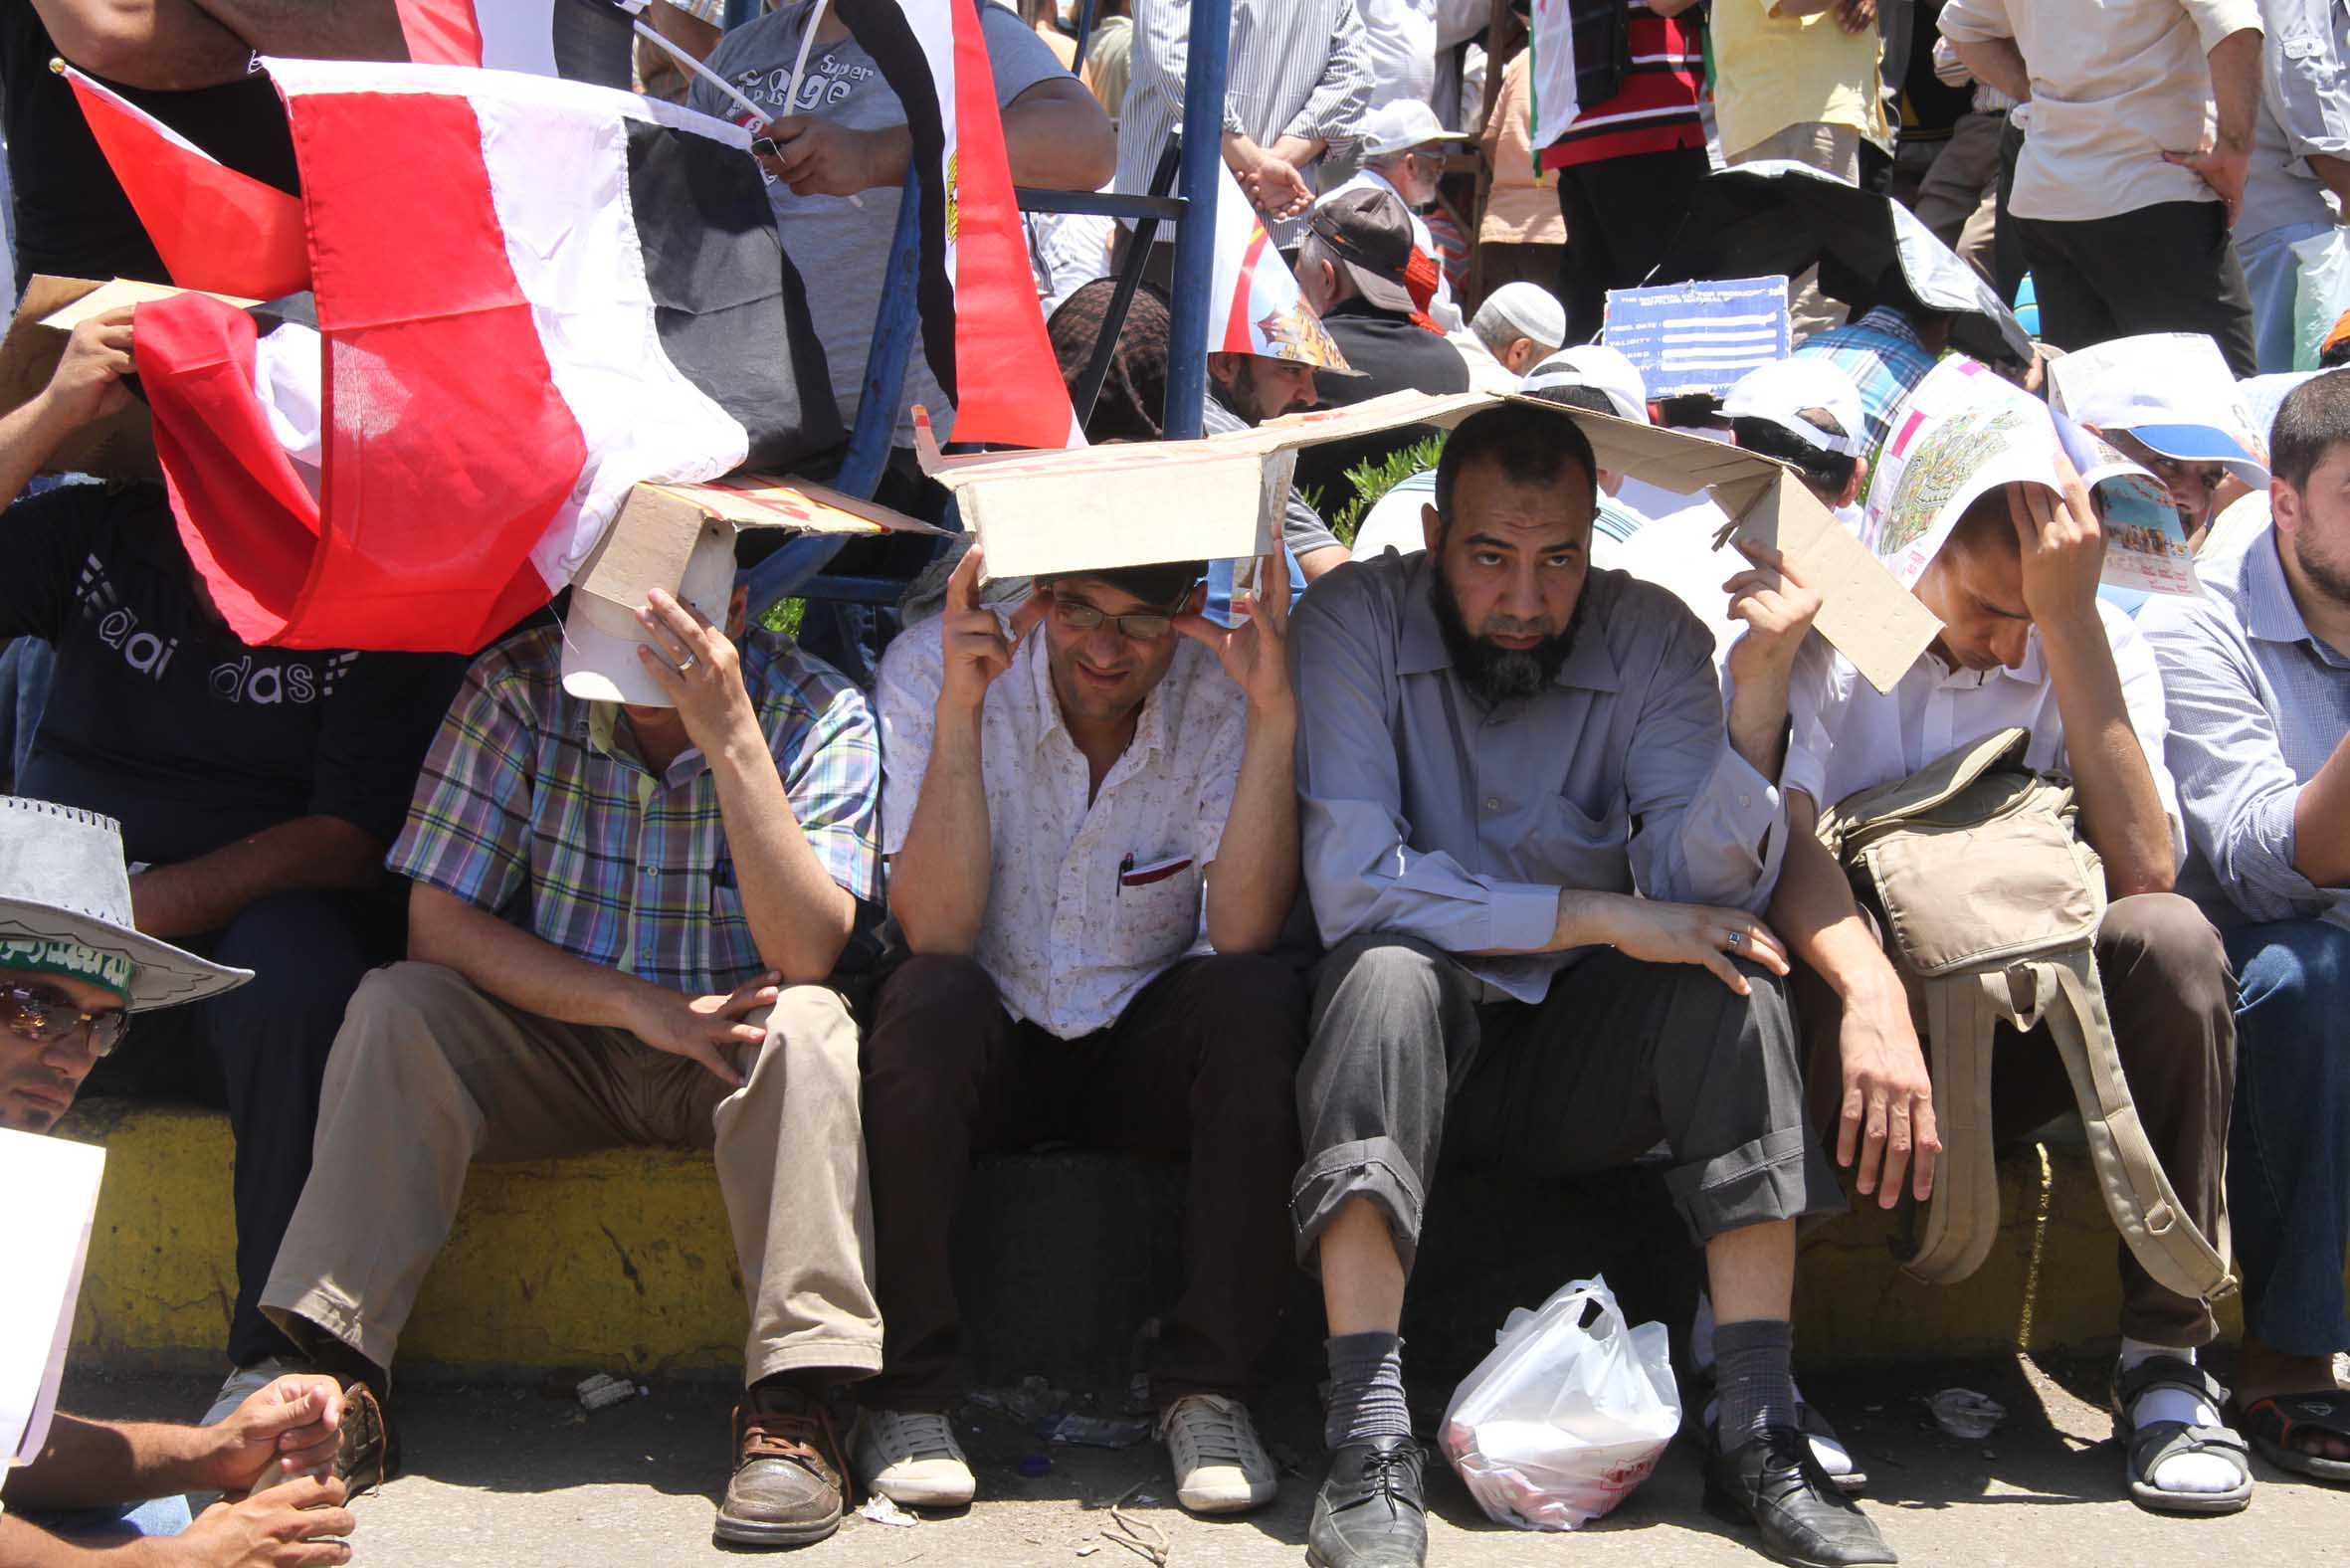 Islamists continue their sit-in in support of former president Morsi (Photo by Mohamed Omar/DNE/File Photo)